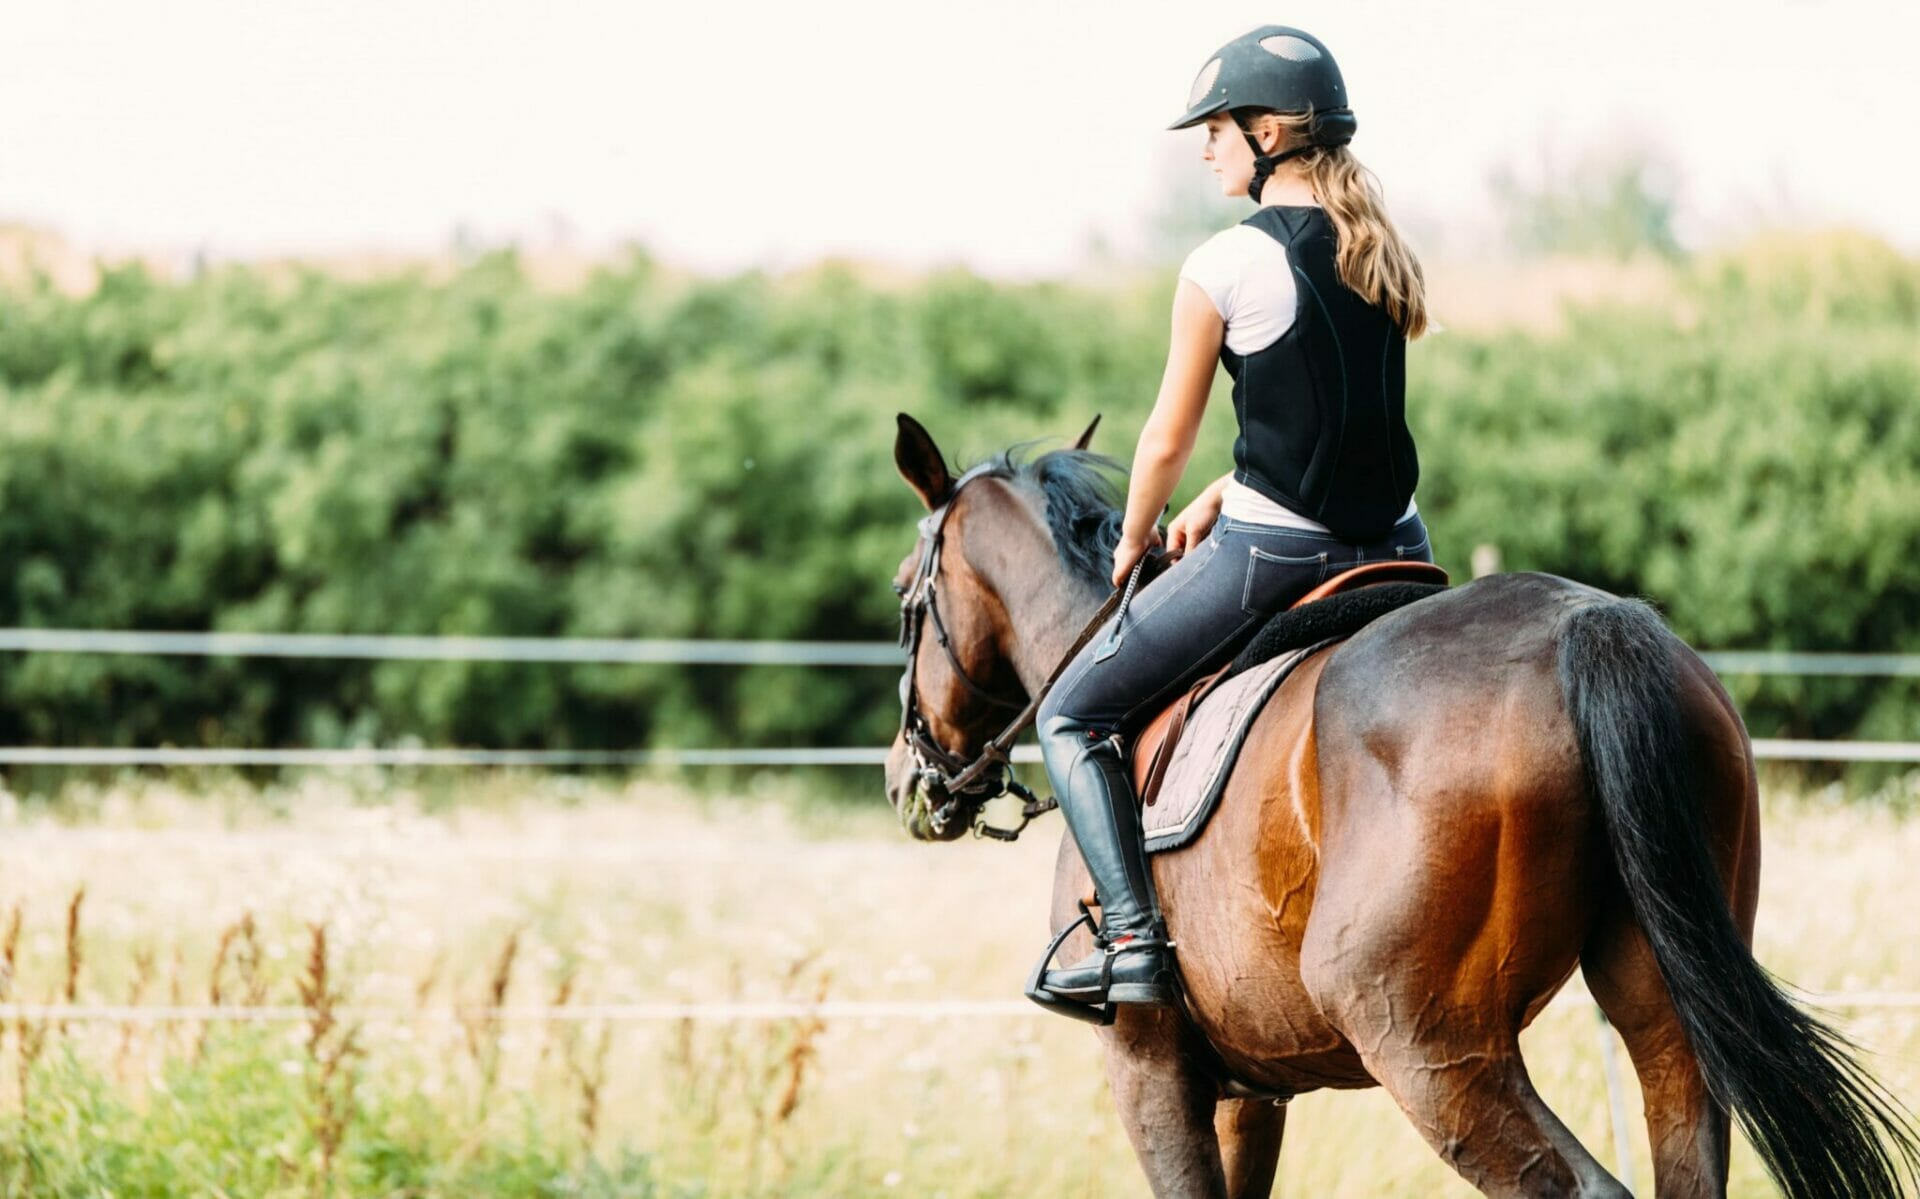 Are you a horse rider and do you feel that your pelvis is out of alignment?